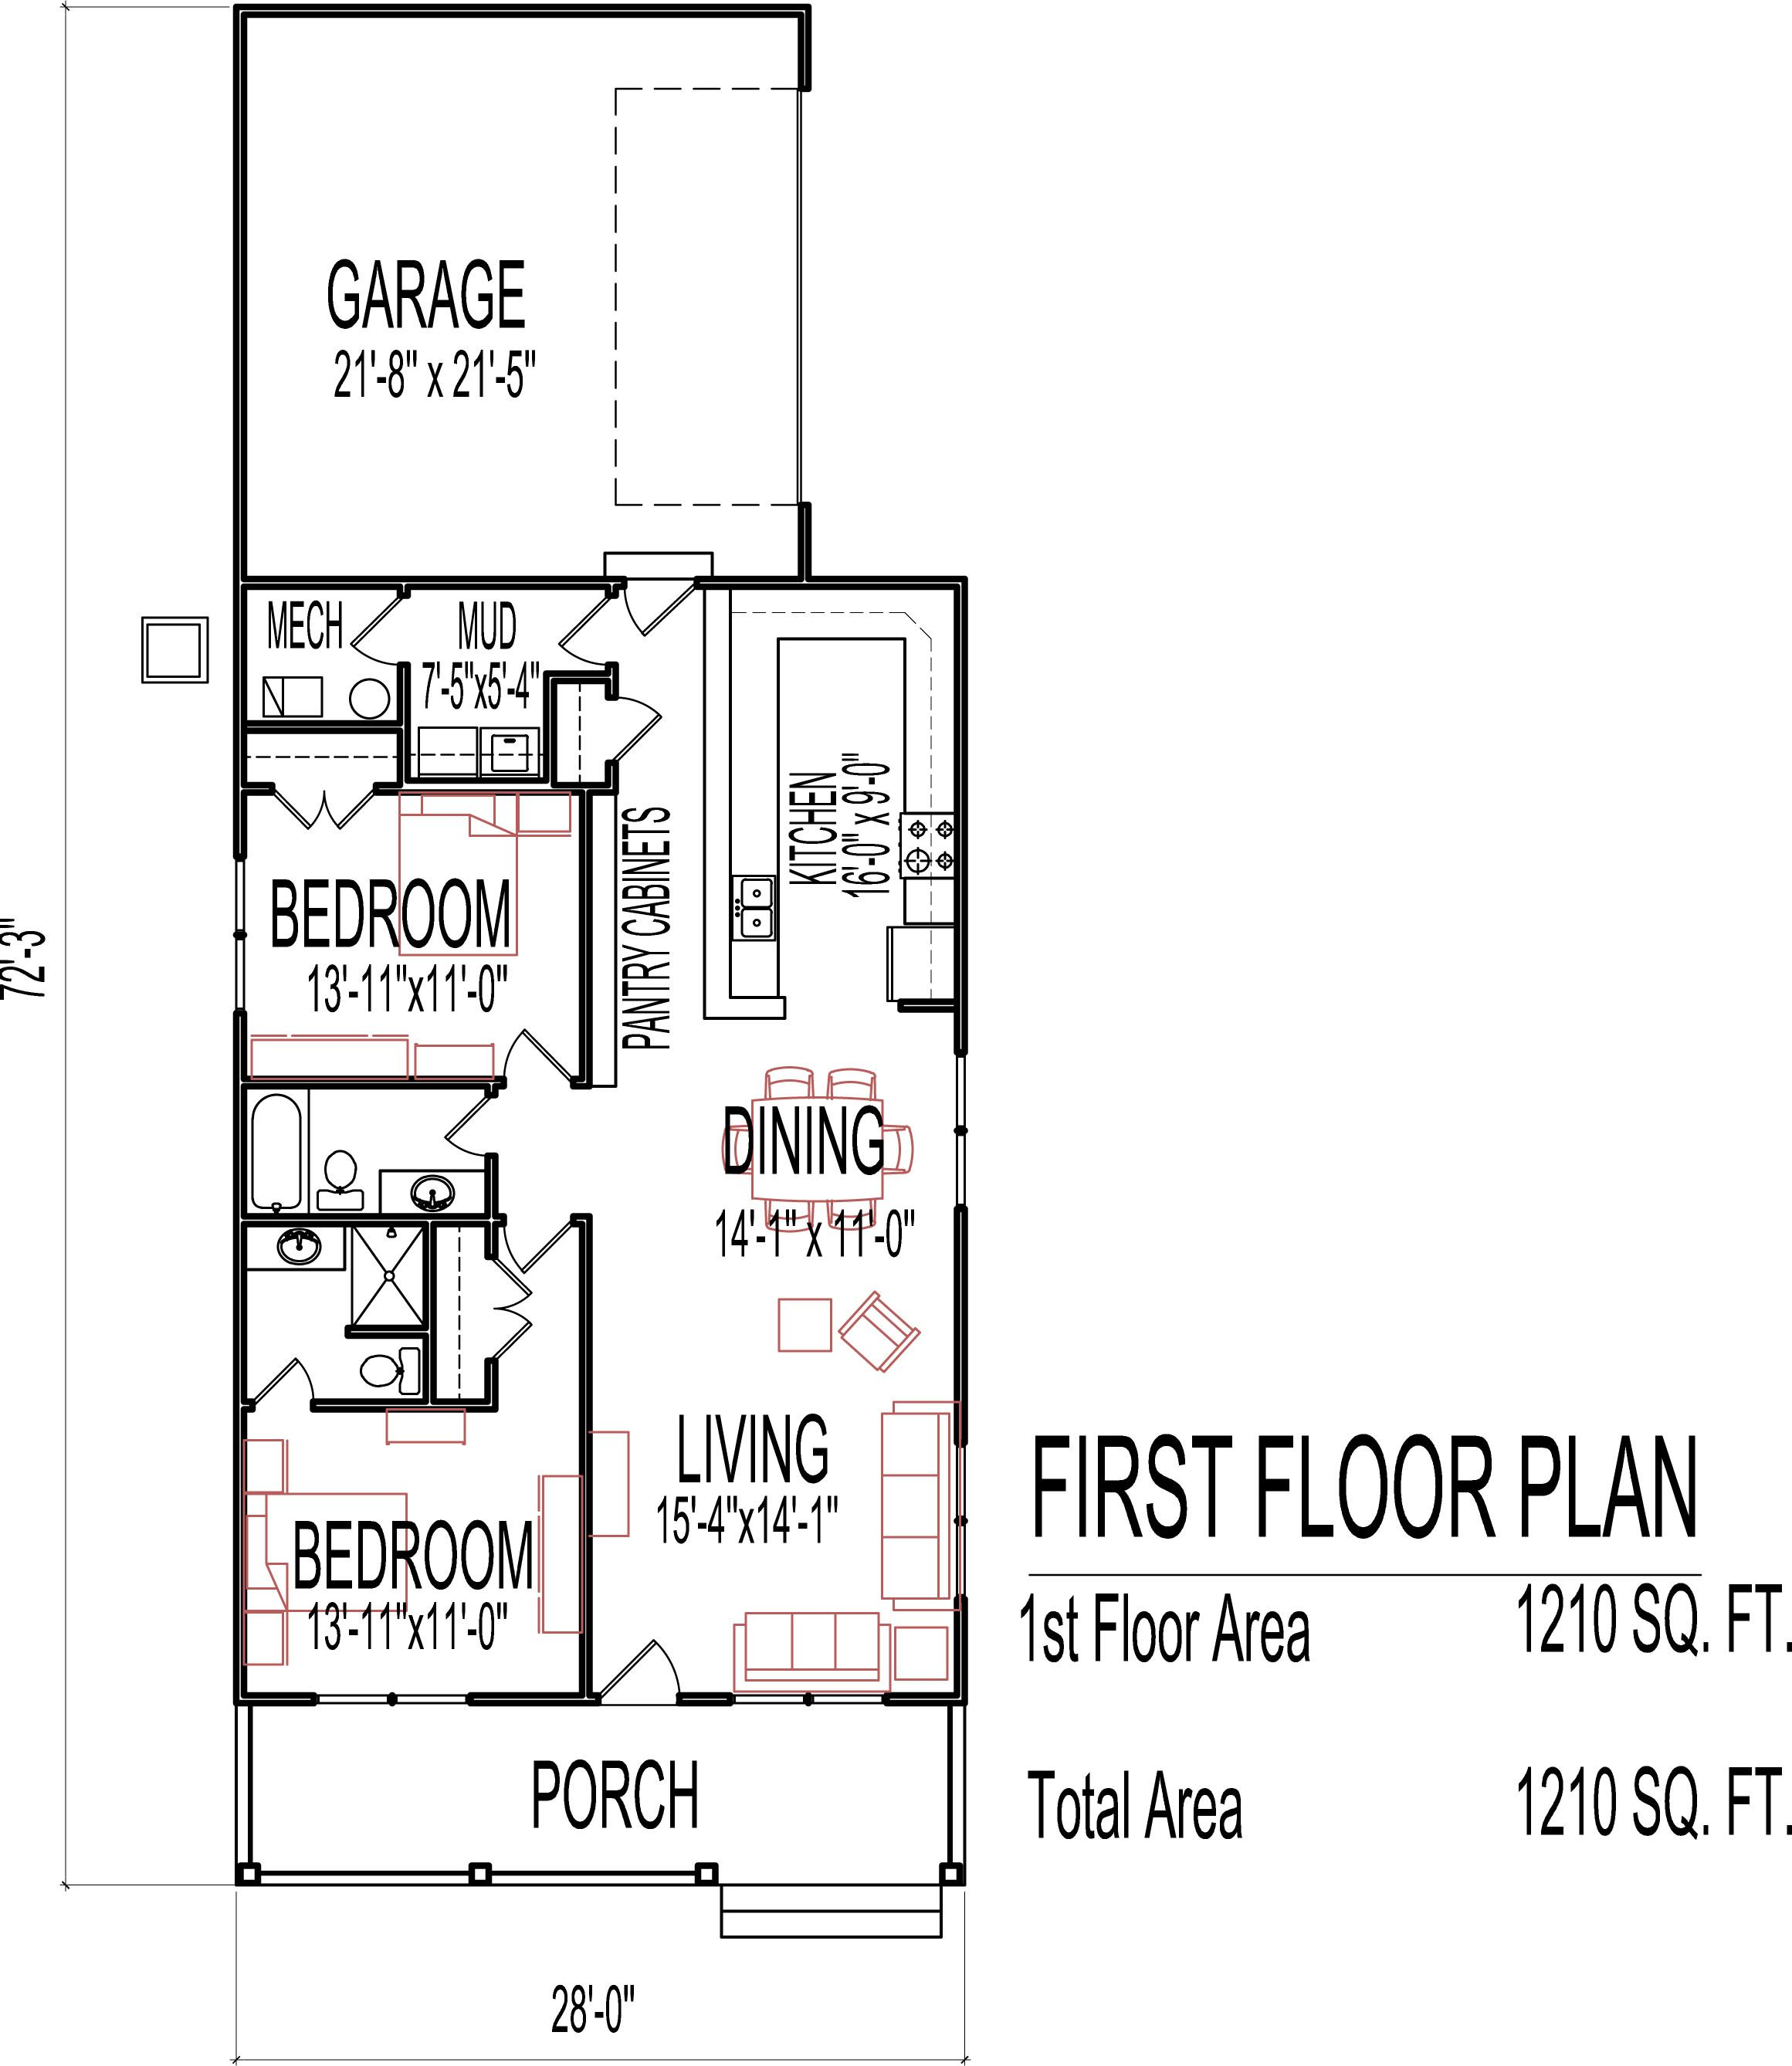 Small low cost economical 2 bedroom 2 bath 1200 sq ft for Small house floor plans with garage